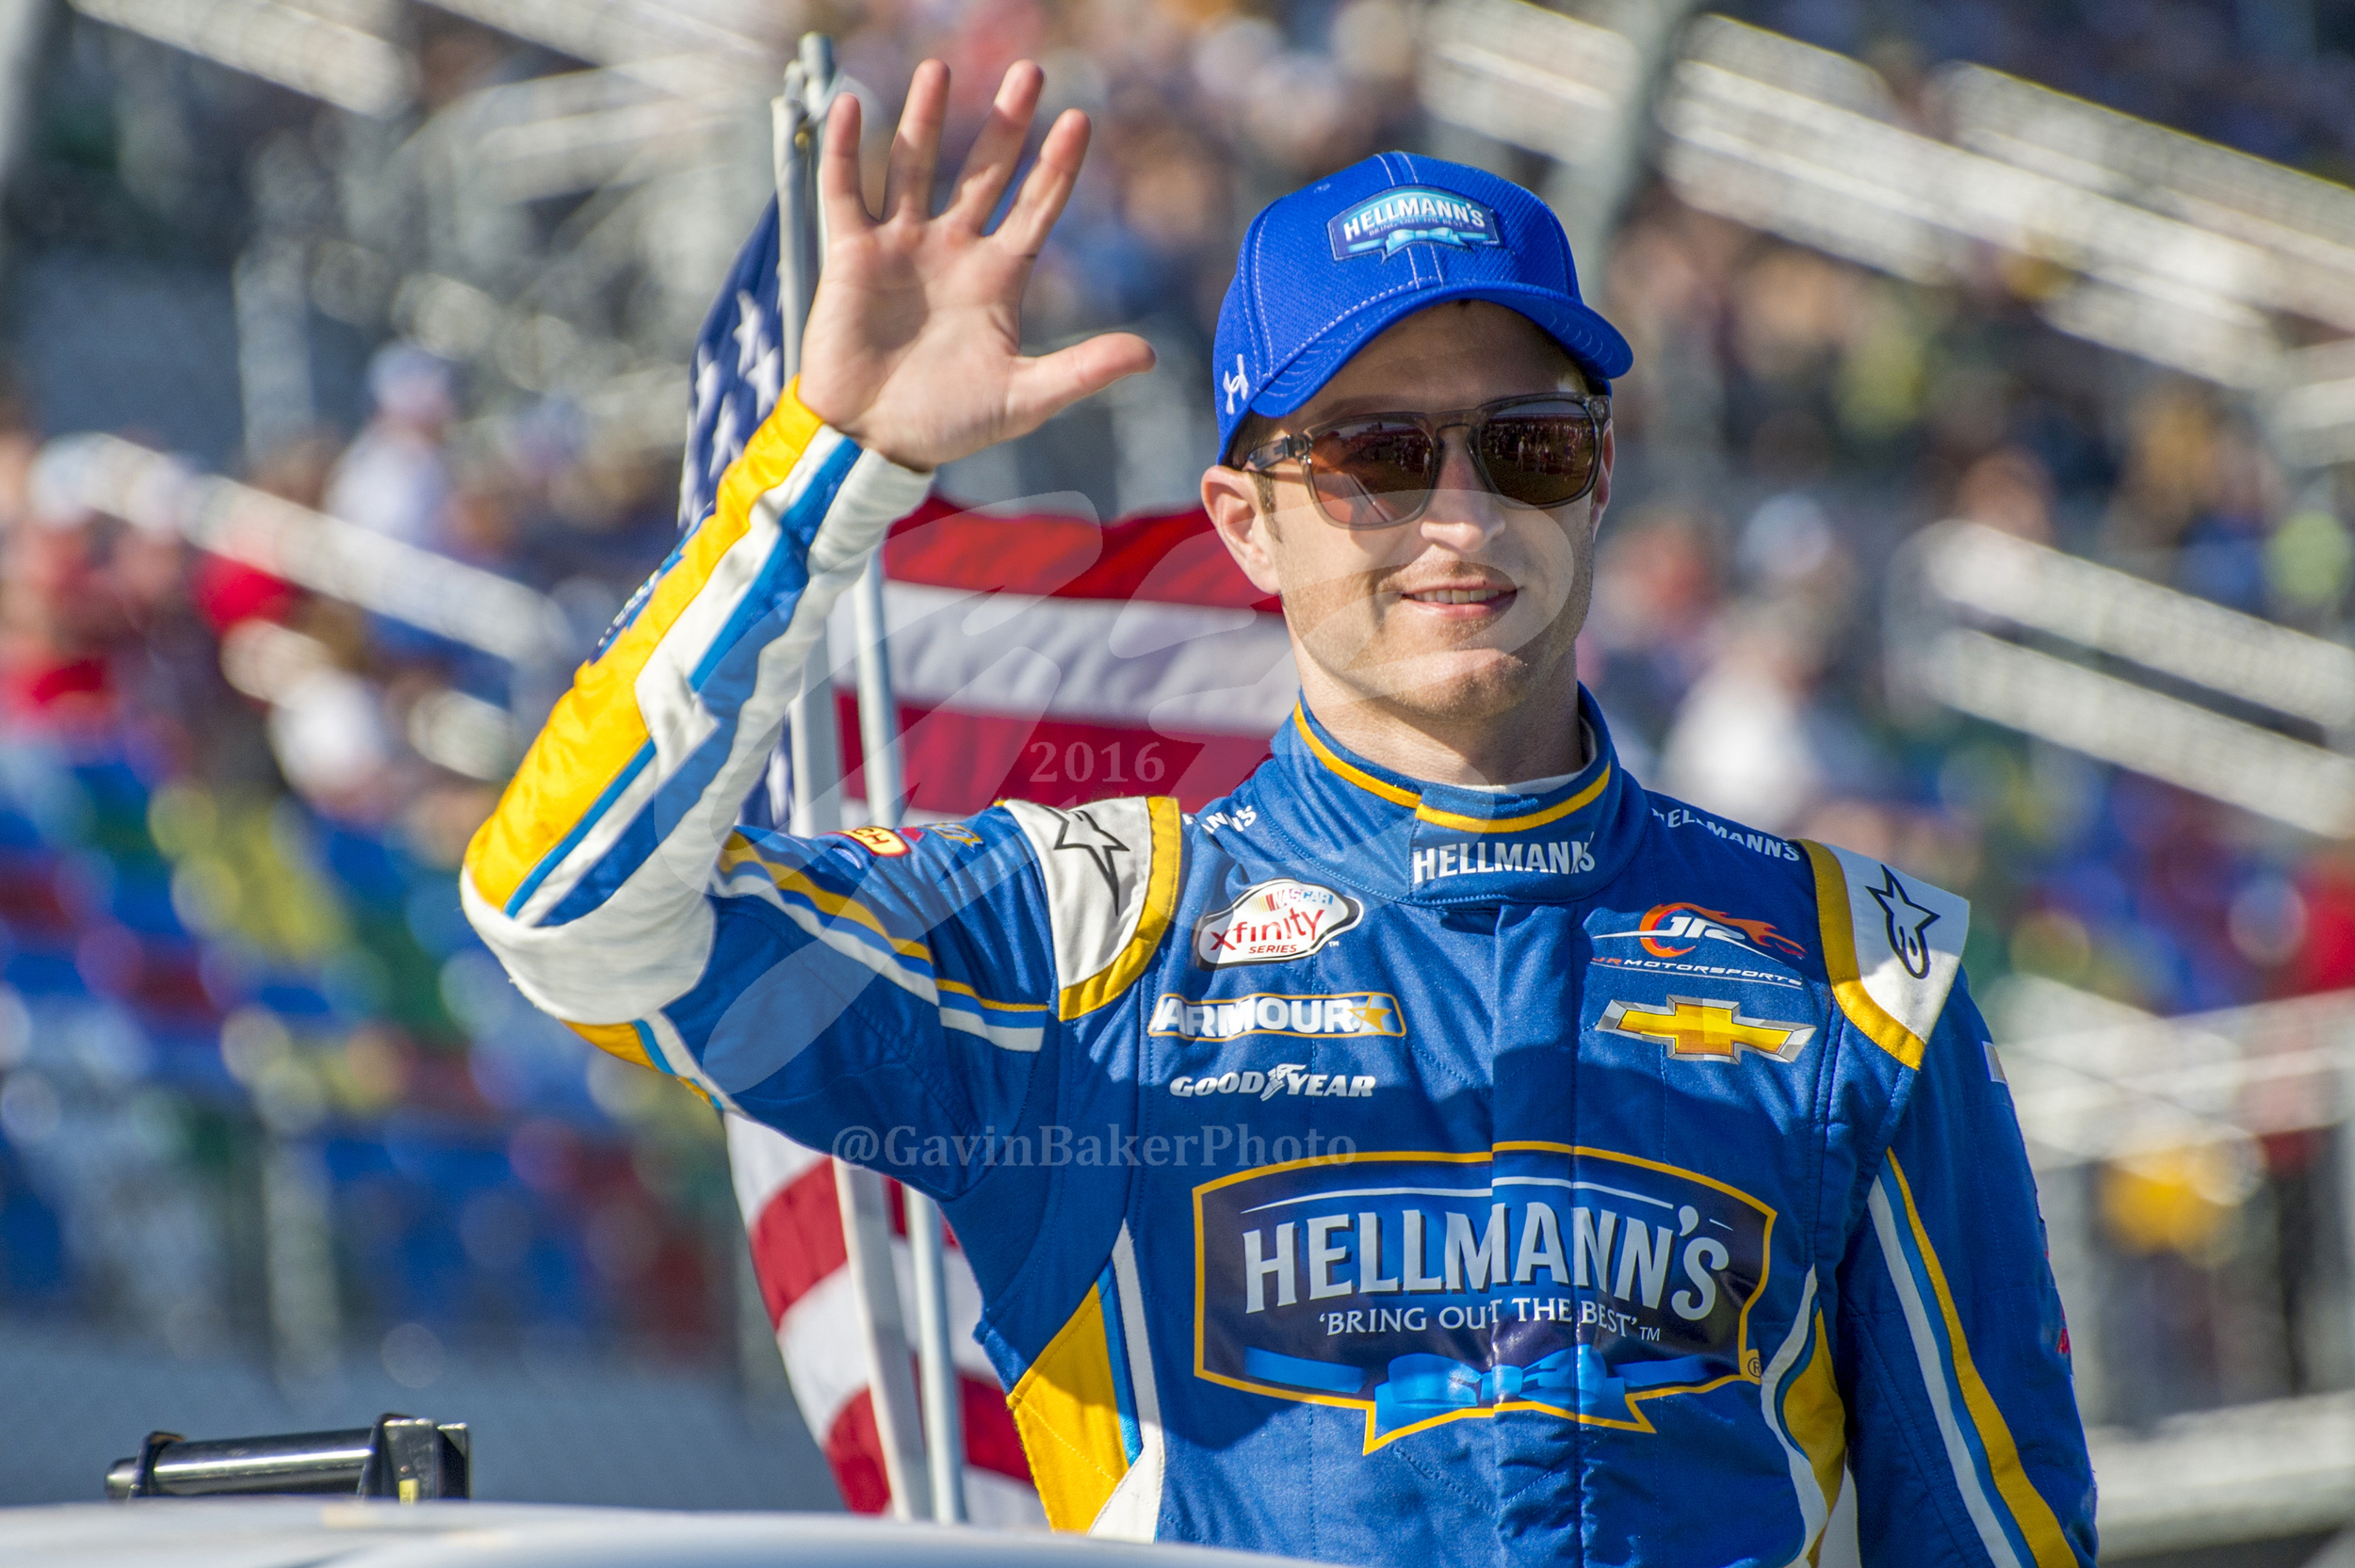 Kasey Kahne, driver of the #5 Hellmann's Chevy, waves to the crowd as he is taken to his racecar for the start of the Daytona 500